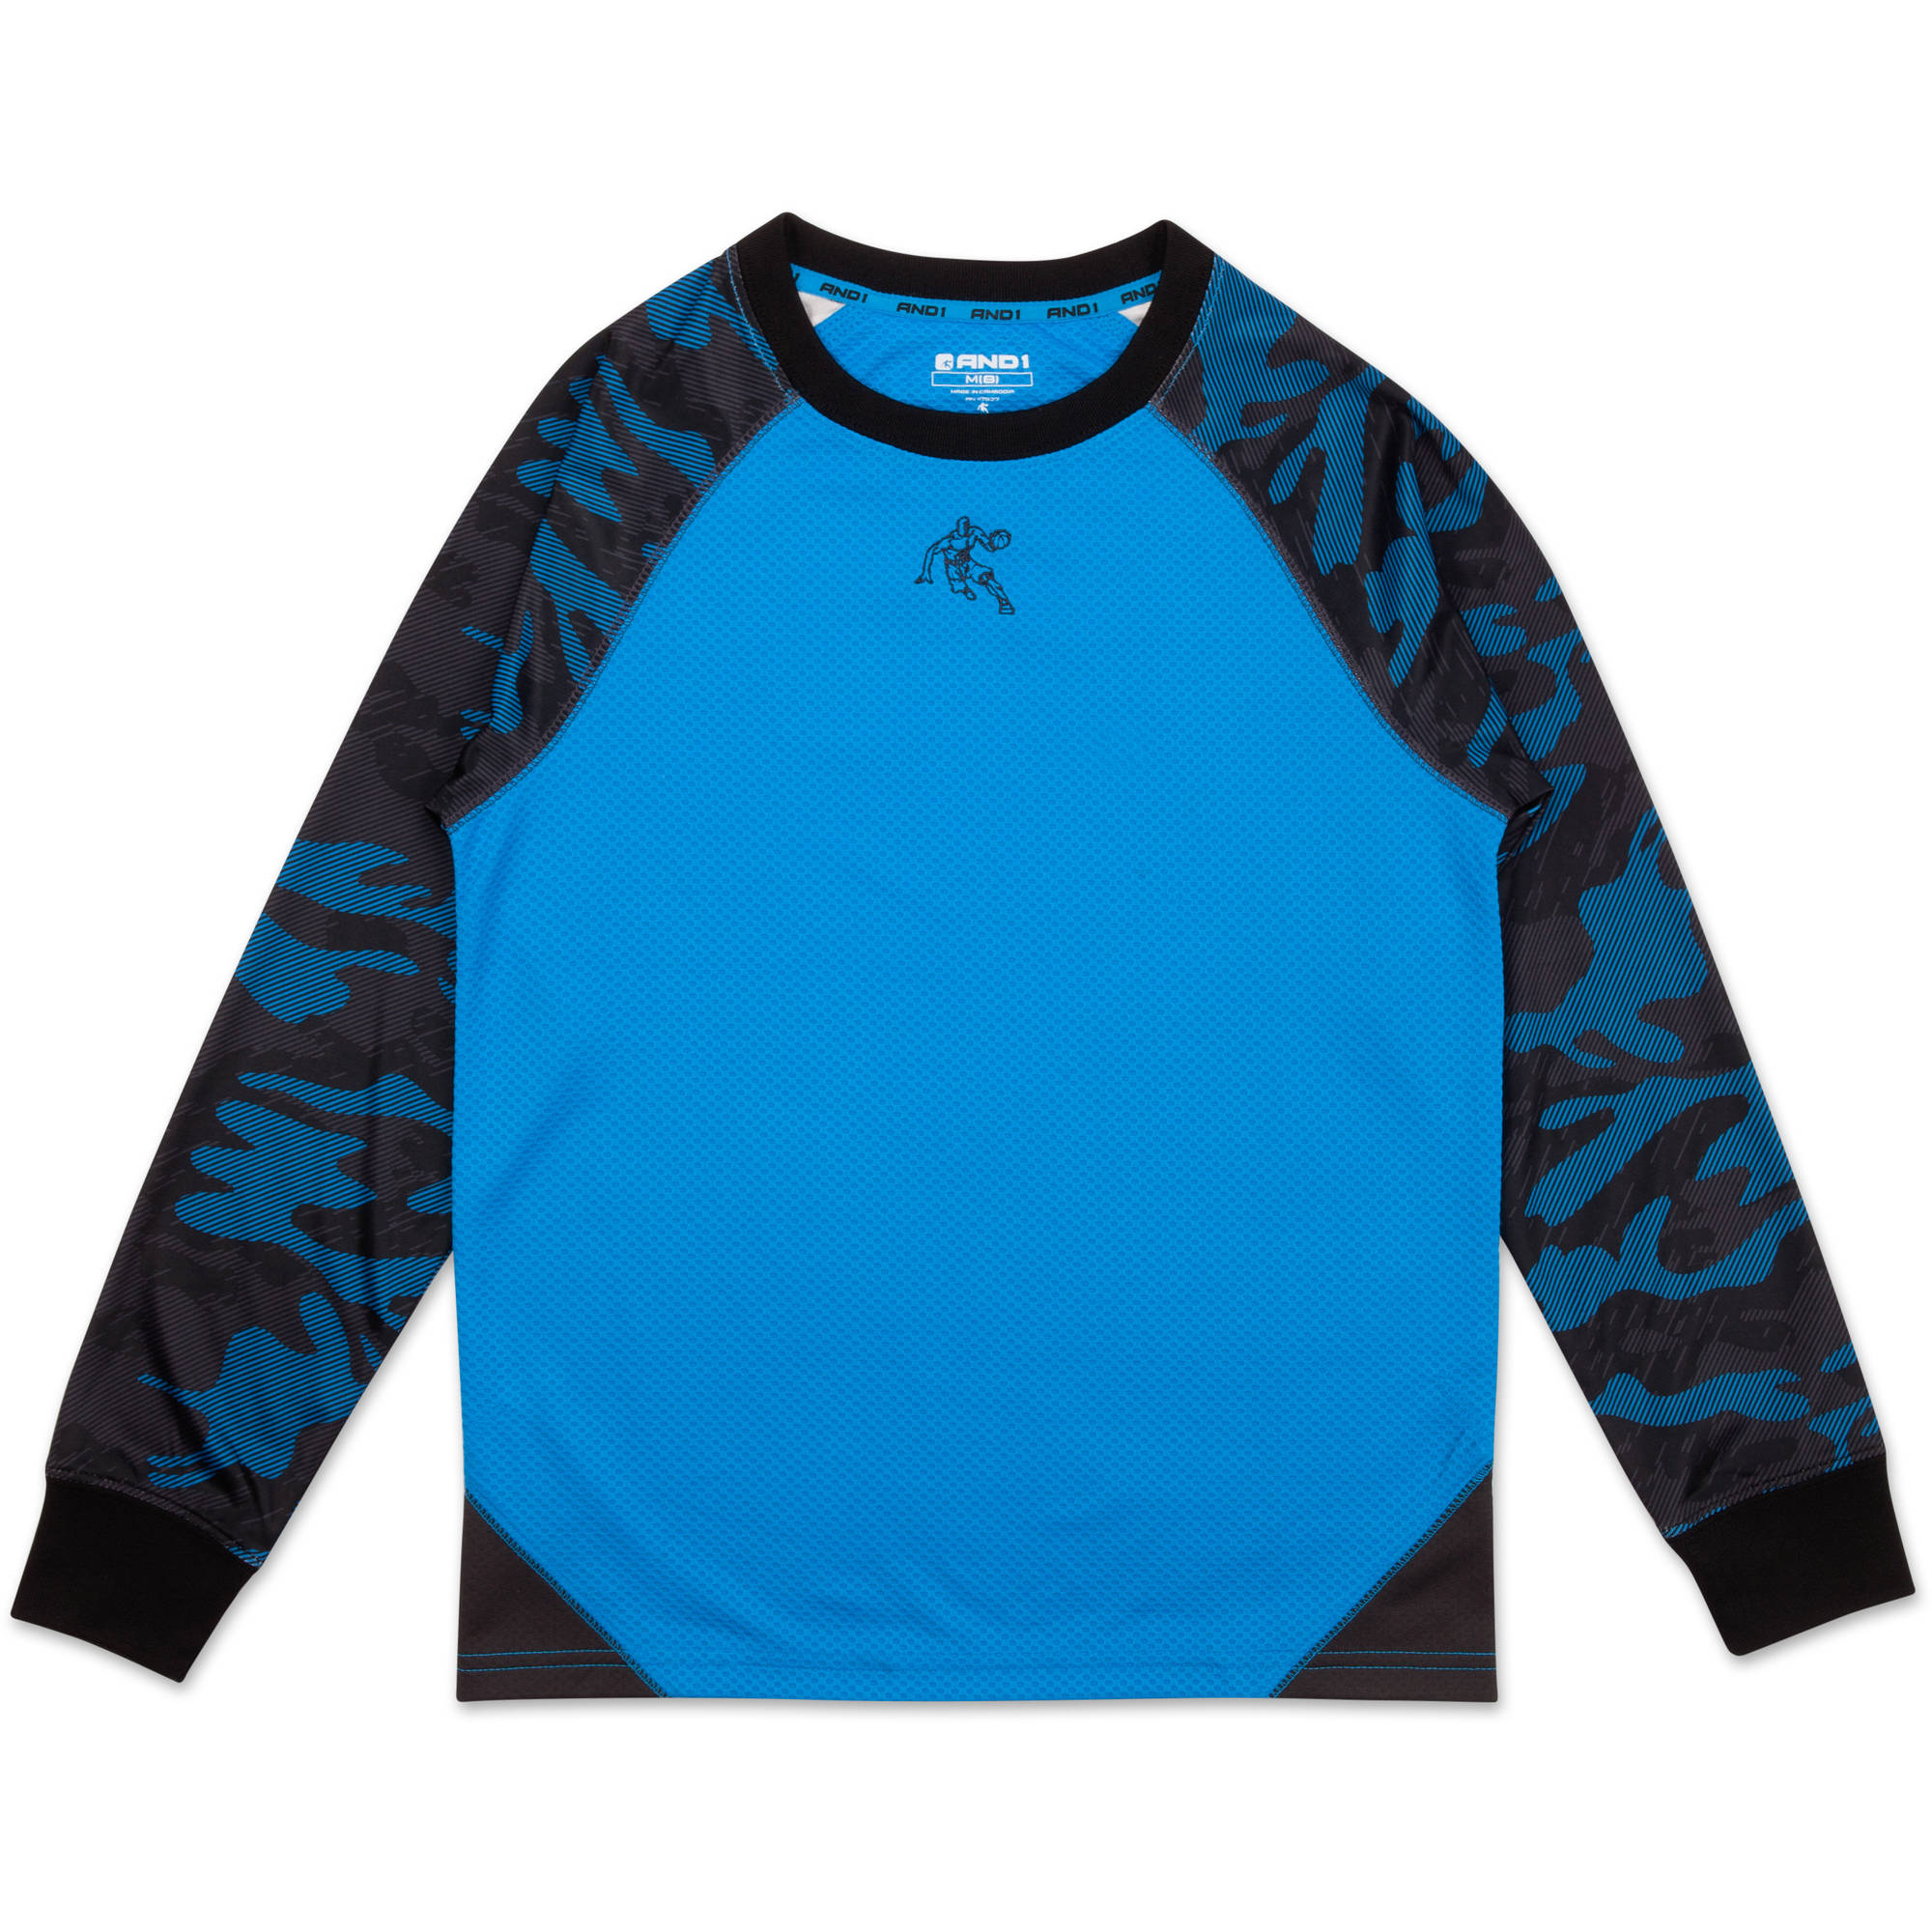 AND1 Boys Free Throw Performance Long Sleeve Top